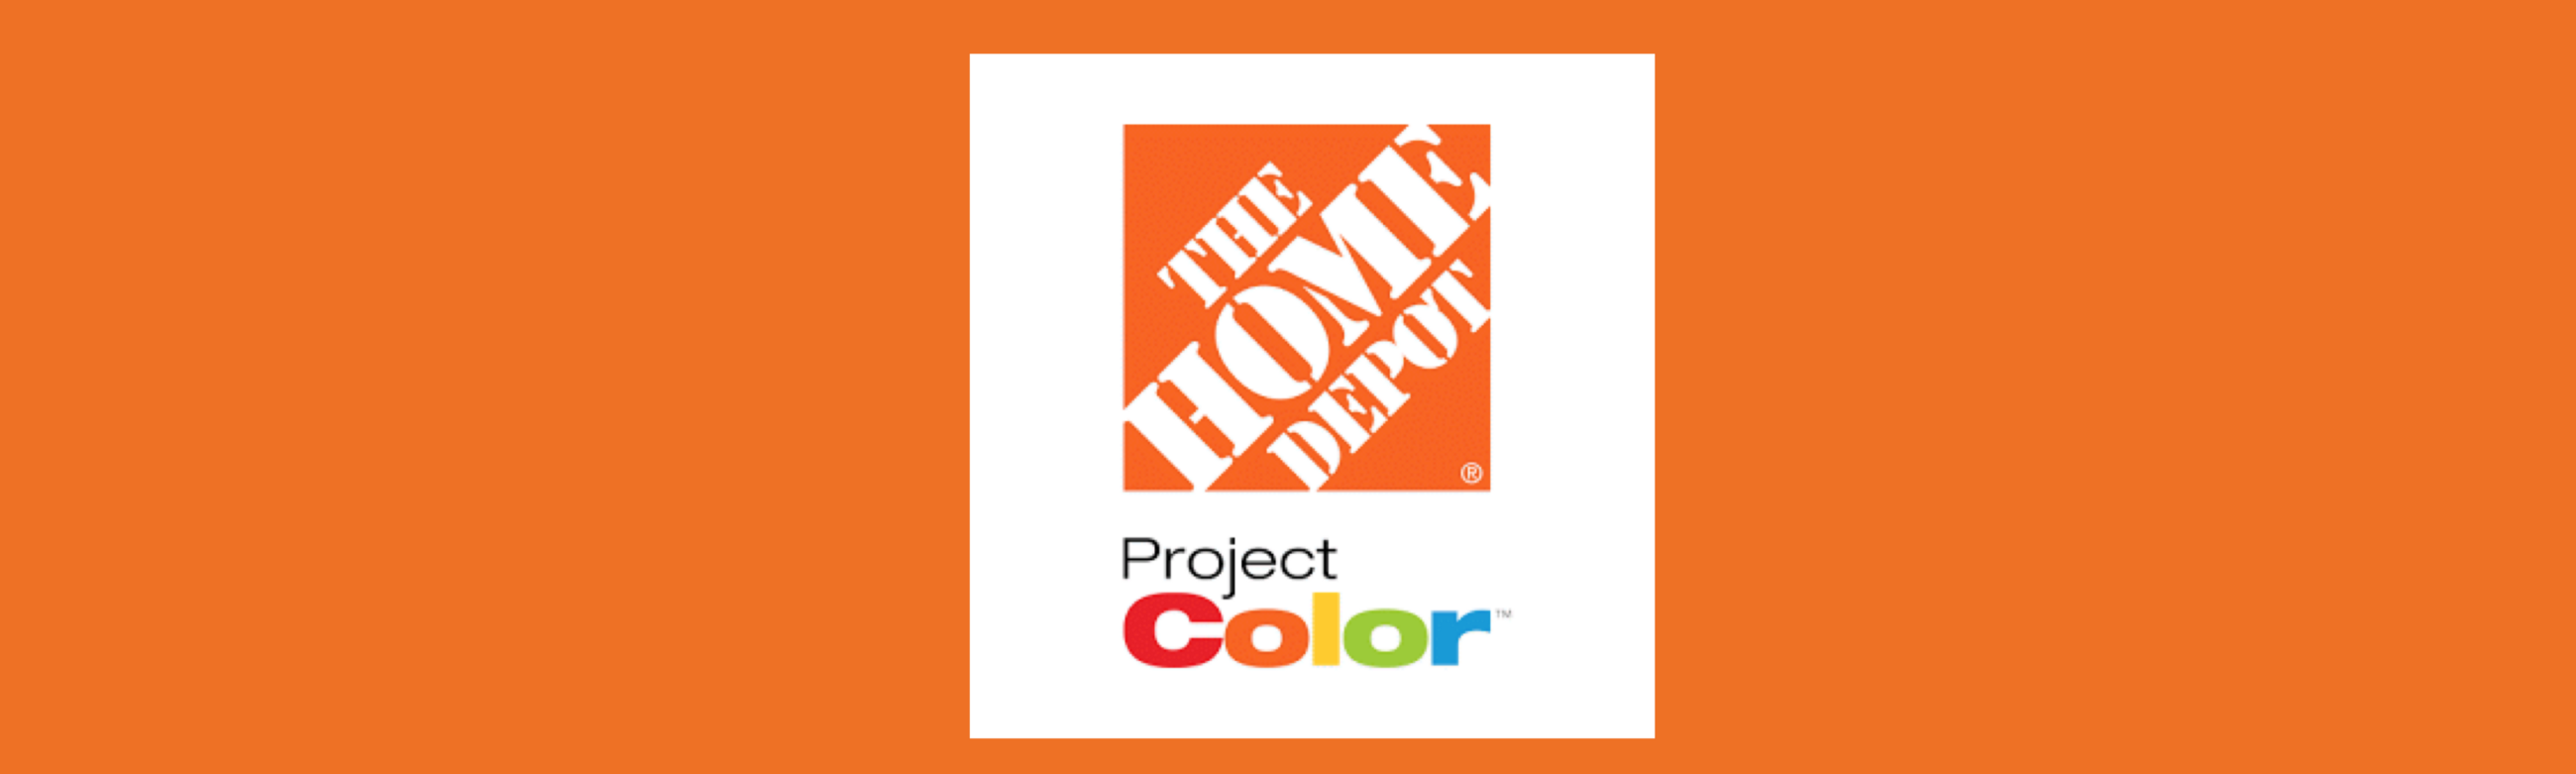 Usability Testing On Home Depot S App Project Color